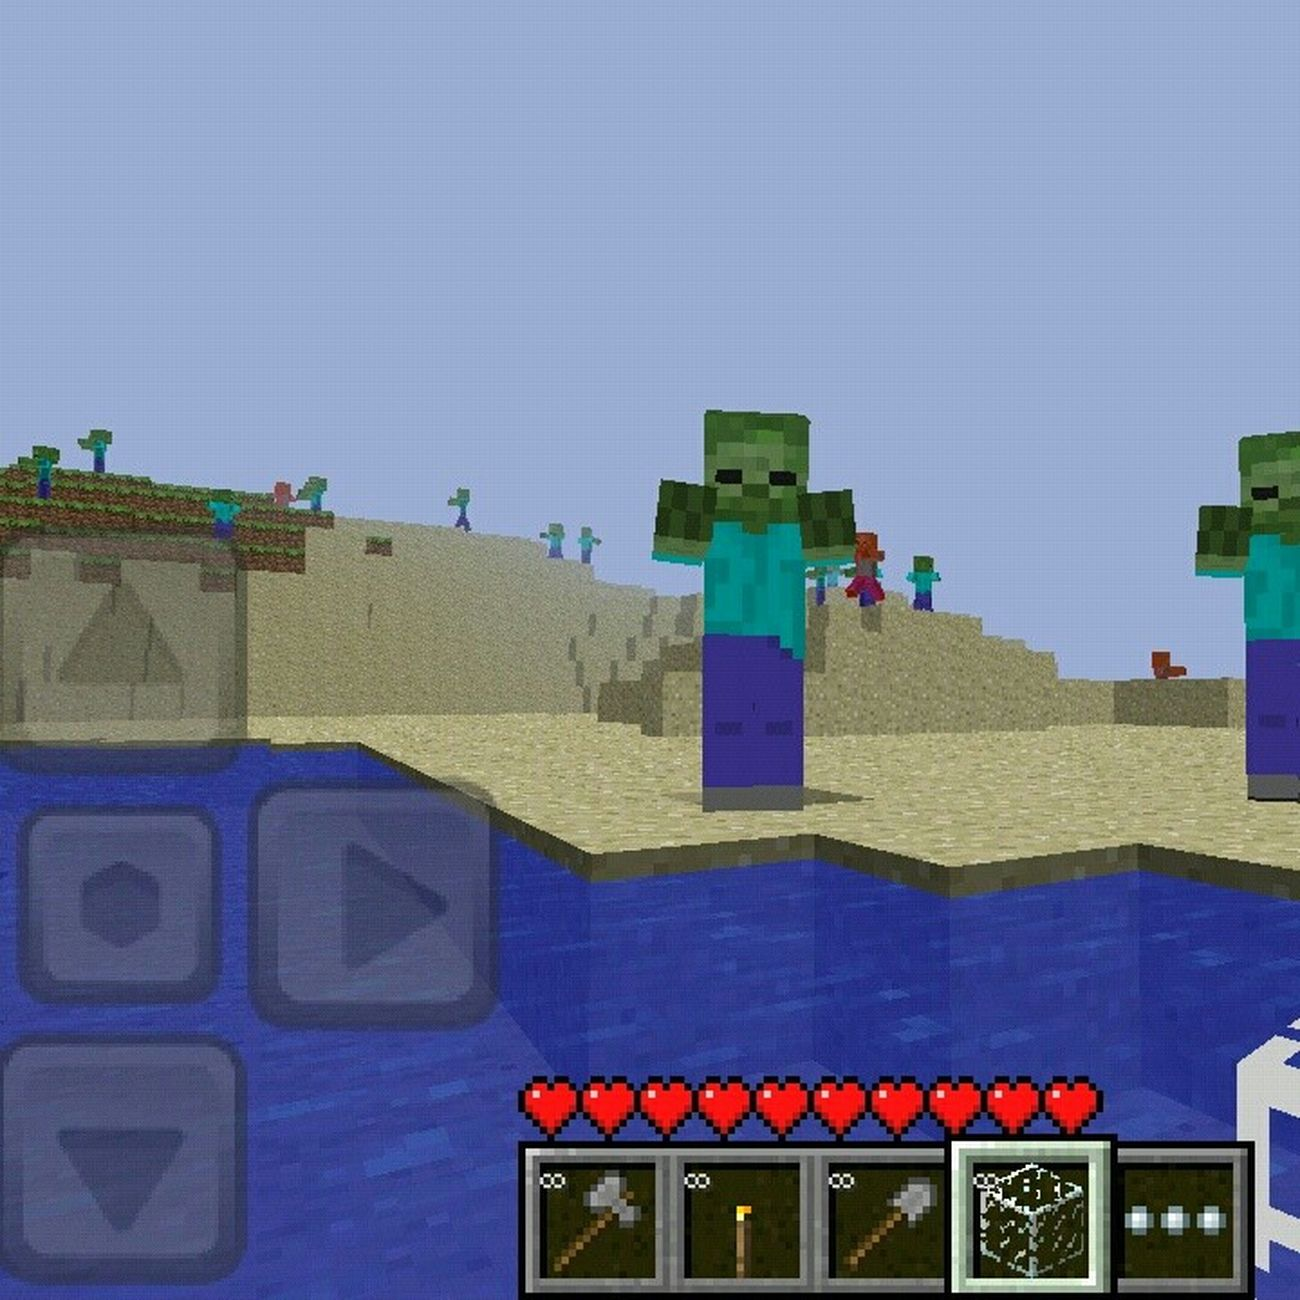 #zombies #mob #minecraft #pe #bored #lol